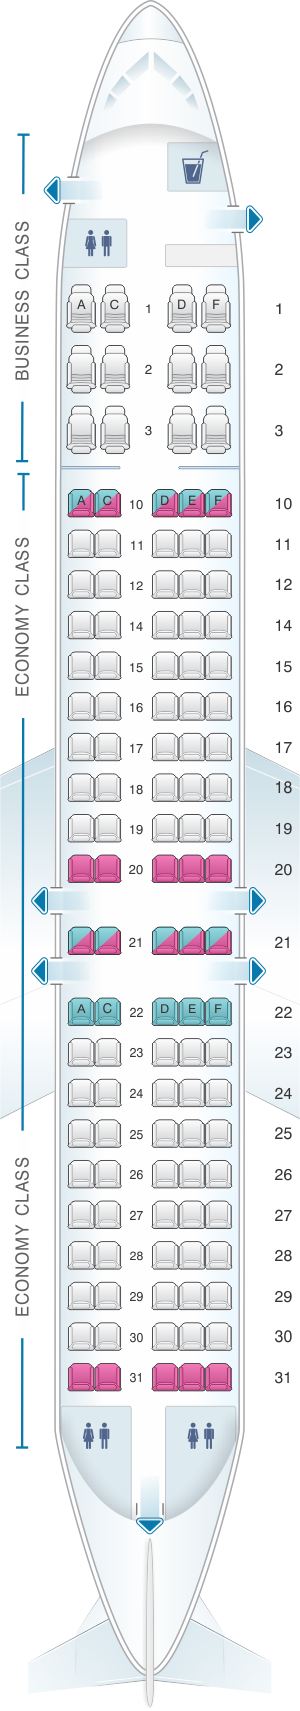 Seat map for Airtran Airways Boeing B717